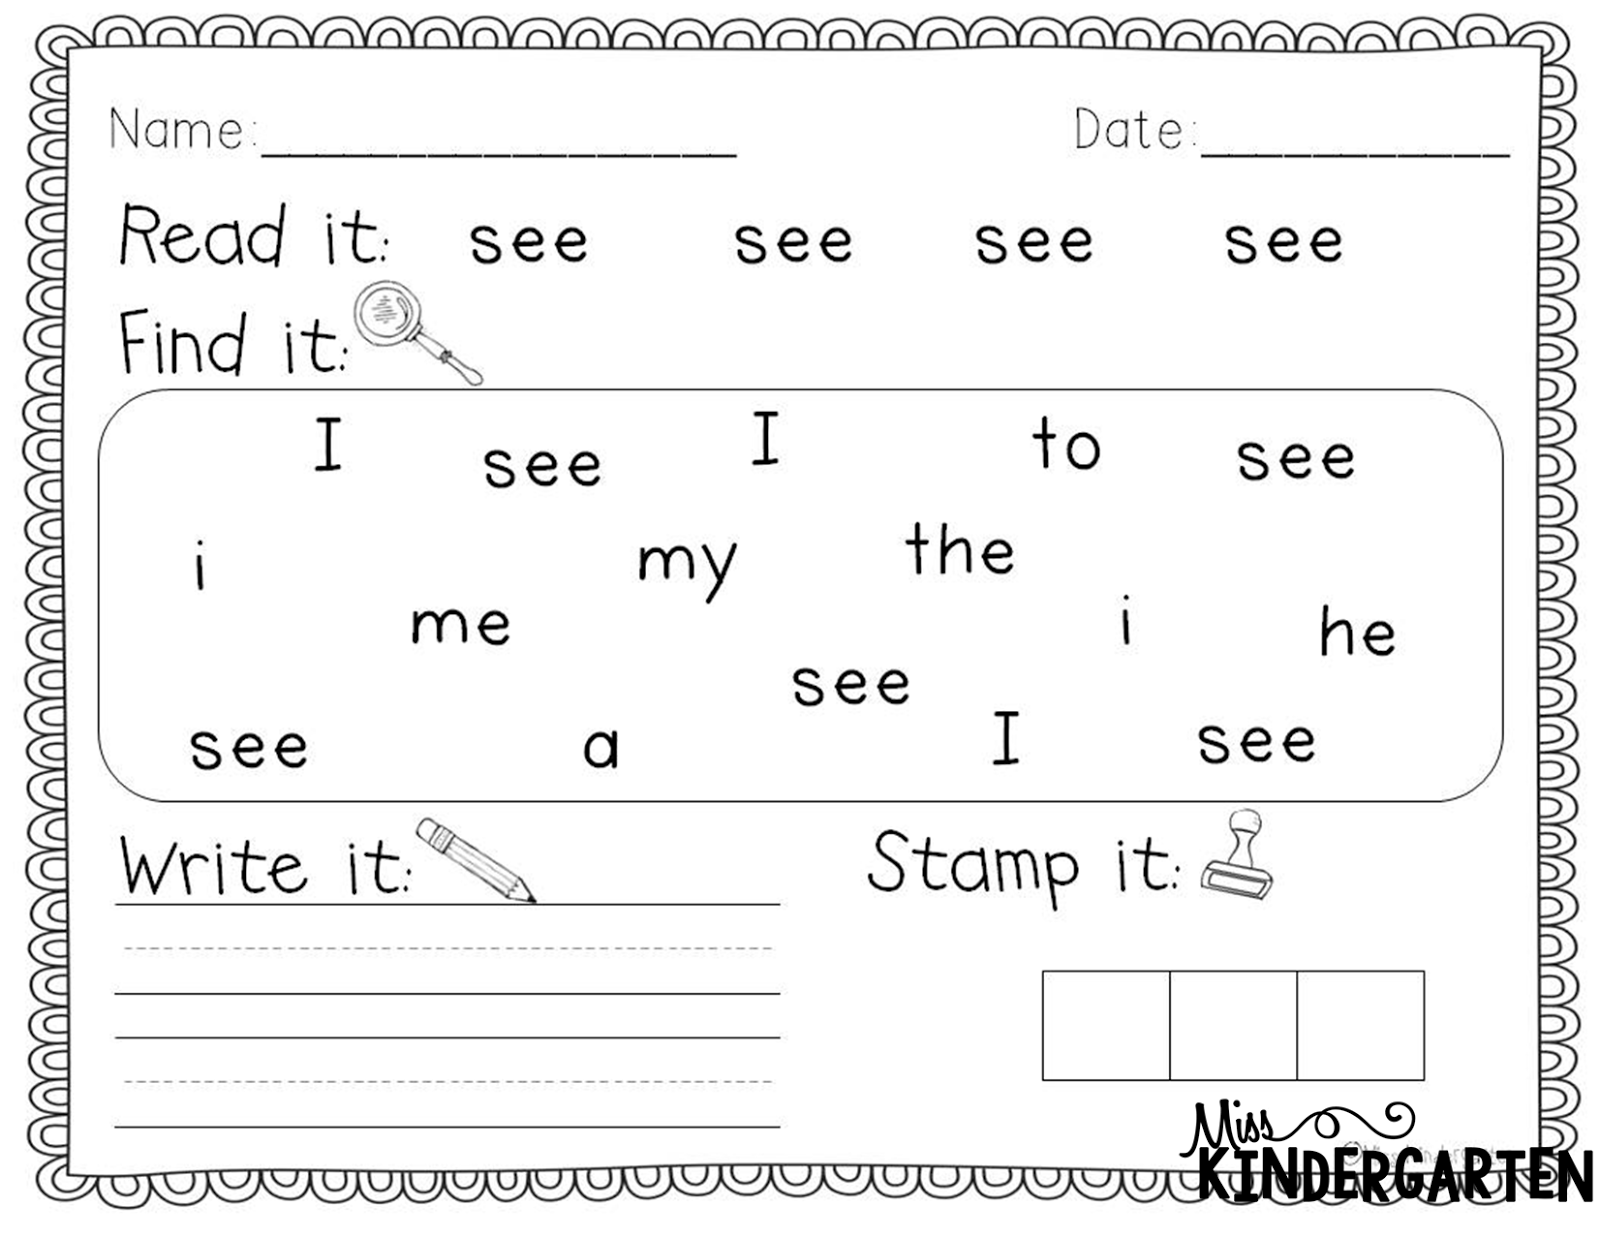 Sight Word Practice! - Miss Kindergartenhttp://www.teacherspayteachers.com/Product/Sight-Word-